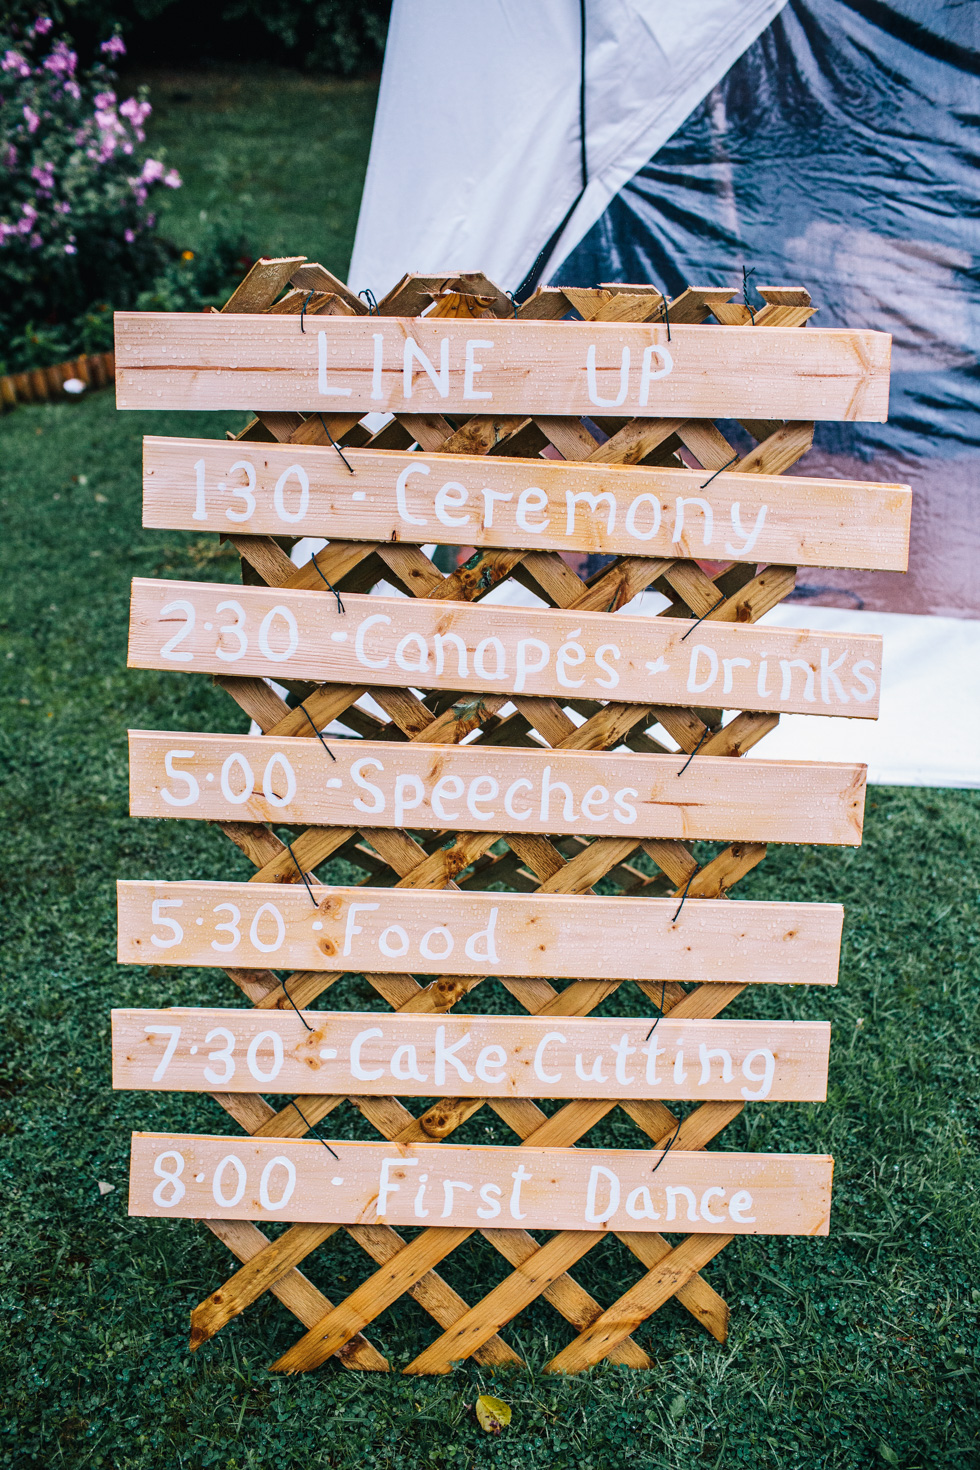 running order of the day on wooden pallet